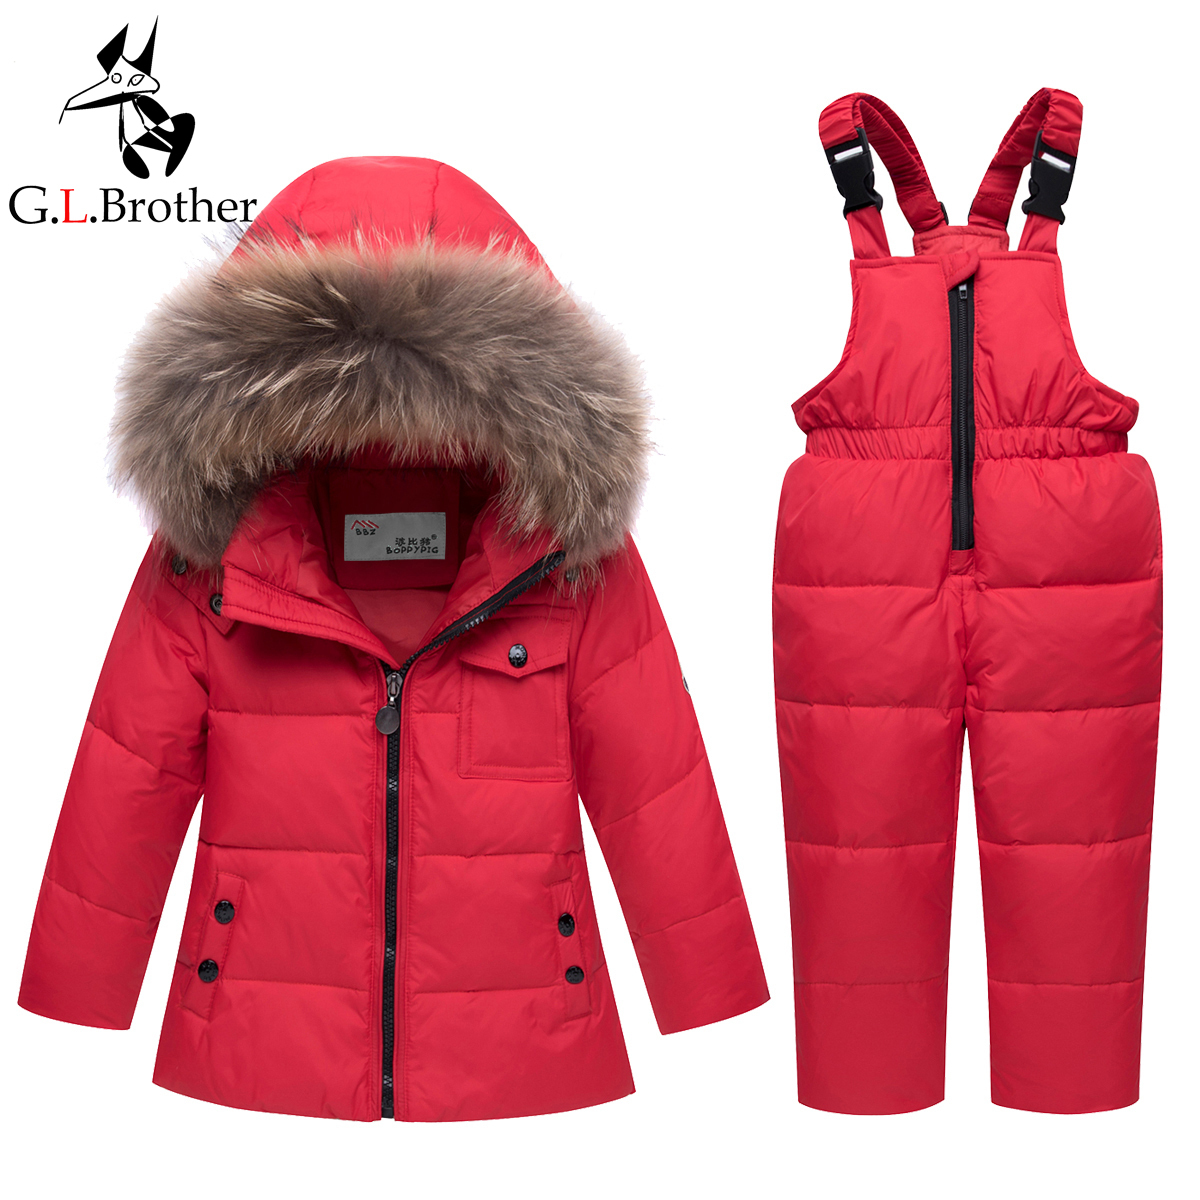 Thick Warm Kids Winter Snowsuit Waterproof Windproof Baby Boys Girls Ski Suits Down Coat+Overall Big Fur Collar Child Snow Wear стоимость